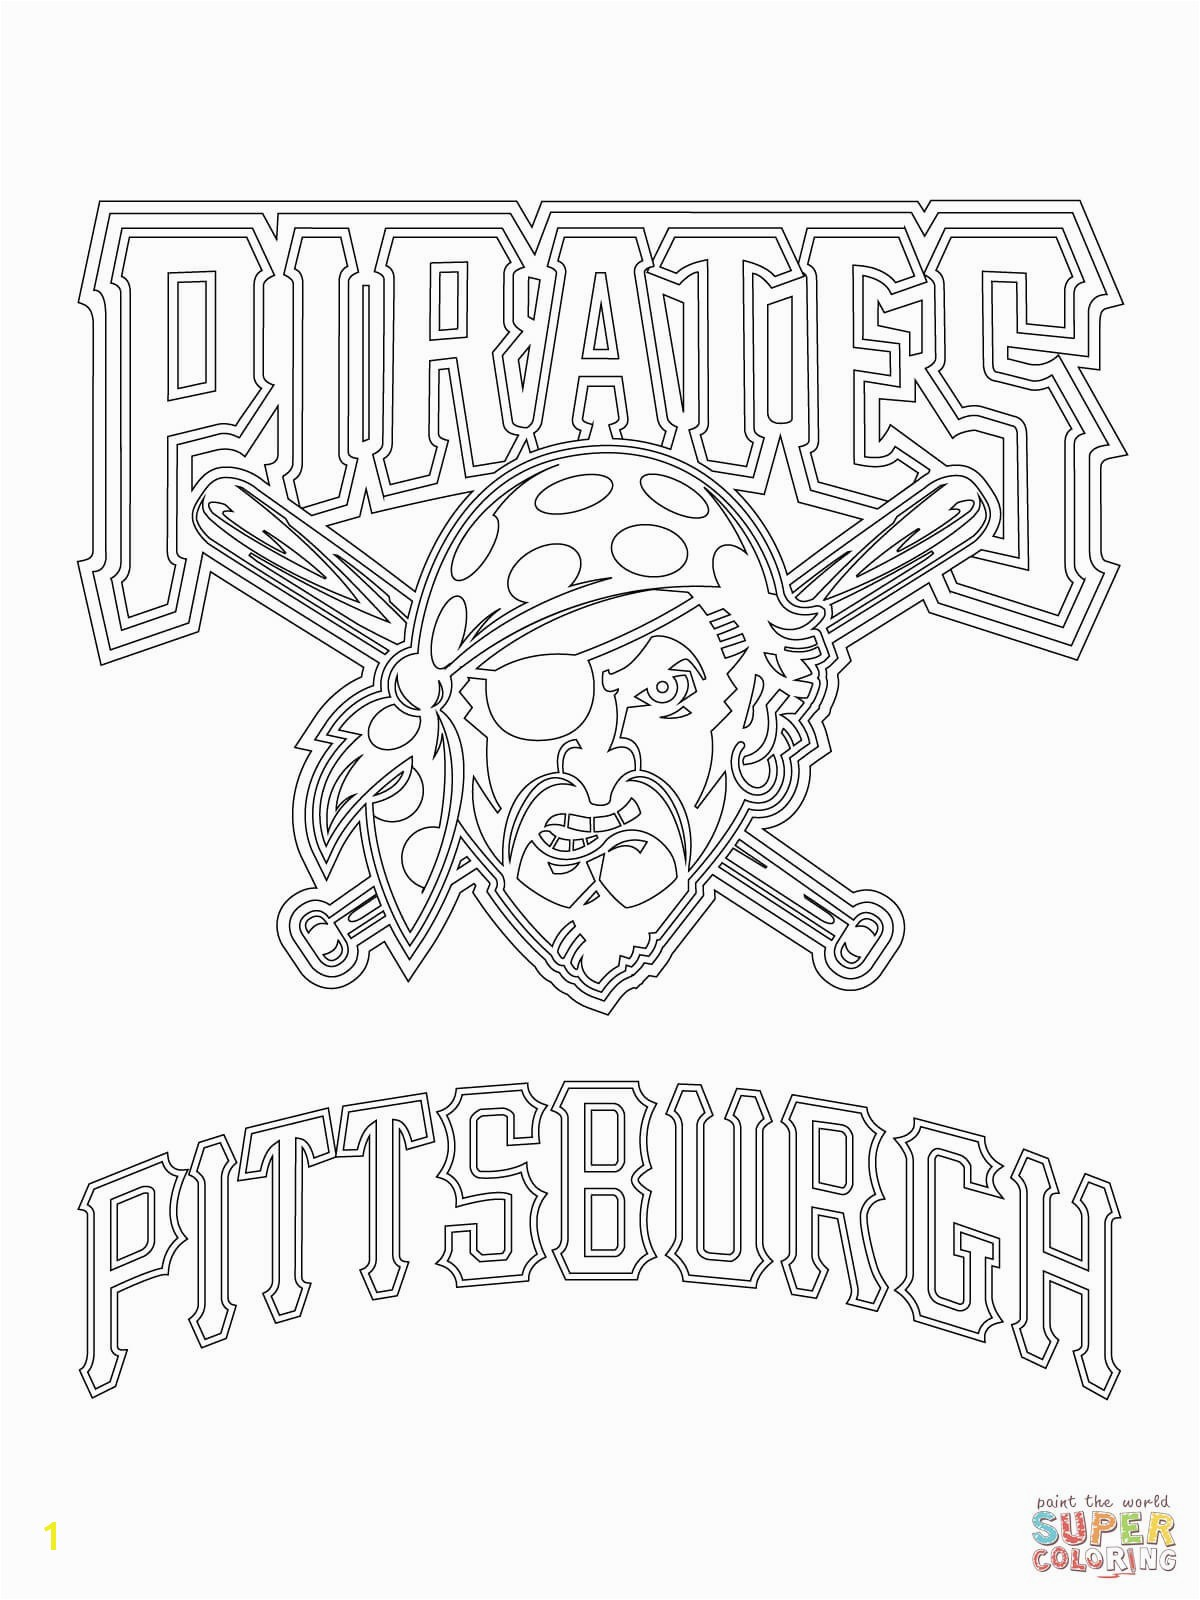 Baltimore orioles Baseball Coloring Pages Elegant Pittsburgh Pirates Logo Coloring Page for Cubs Pages Coloring